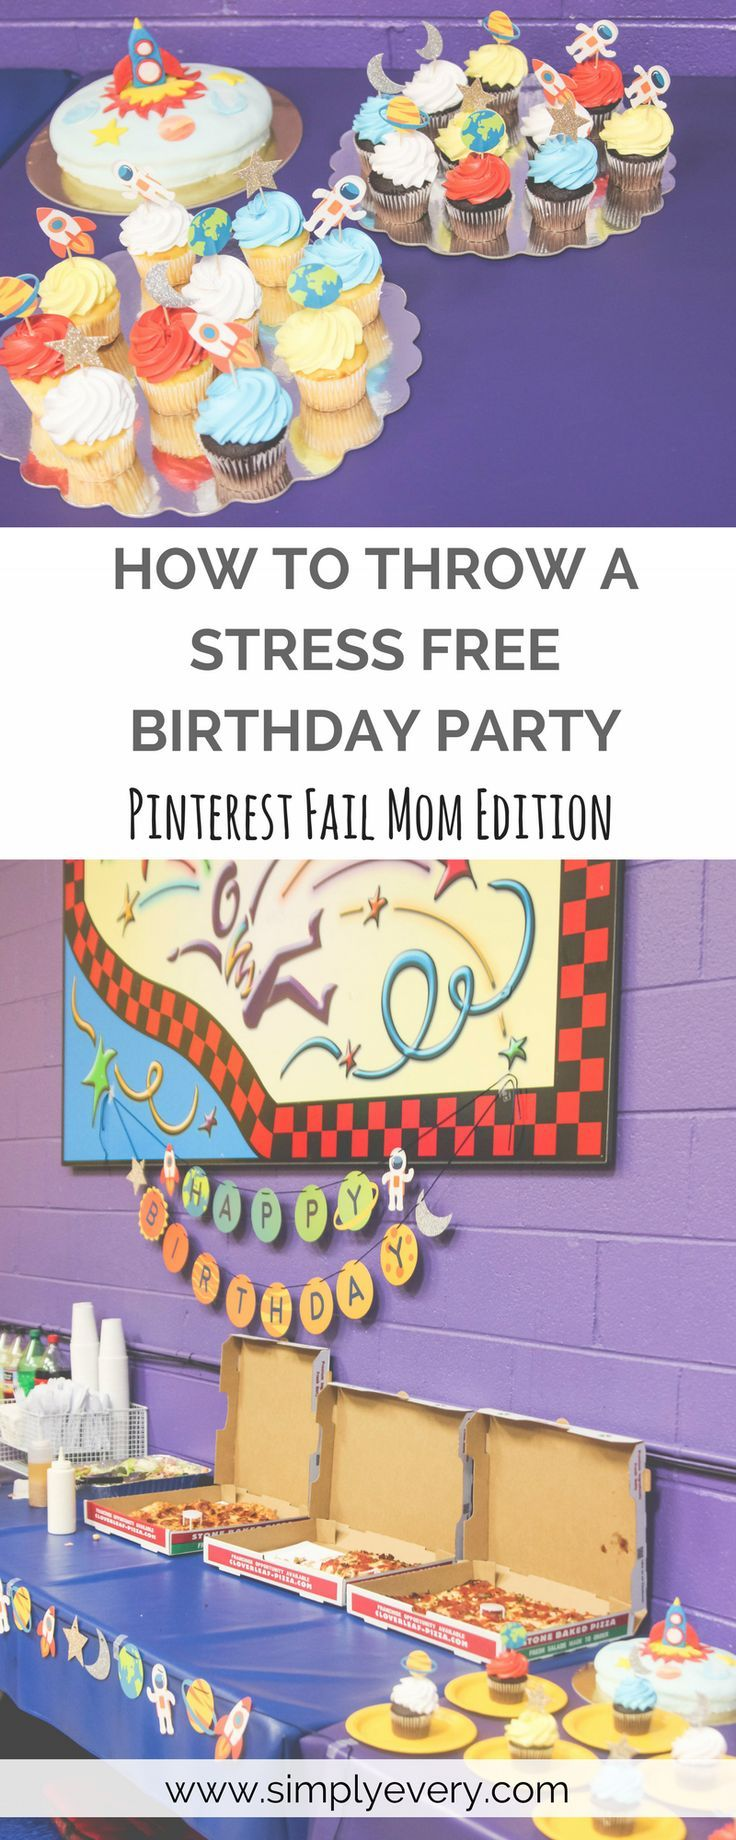 How To Throw A Stress Free Birthday Party, Pump It Up!, kids parties, stress free birthday, birthday parties, kids playplace, party planning